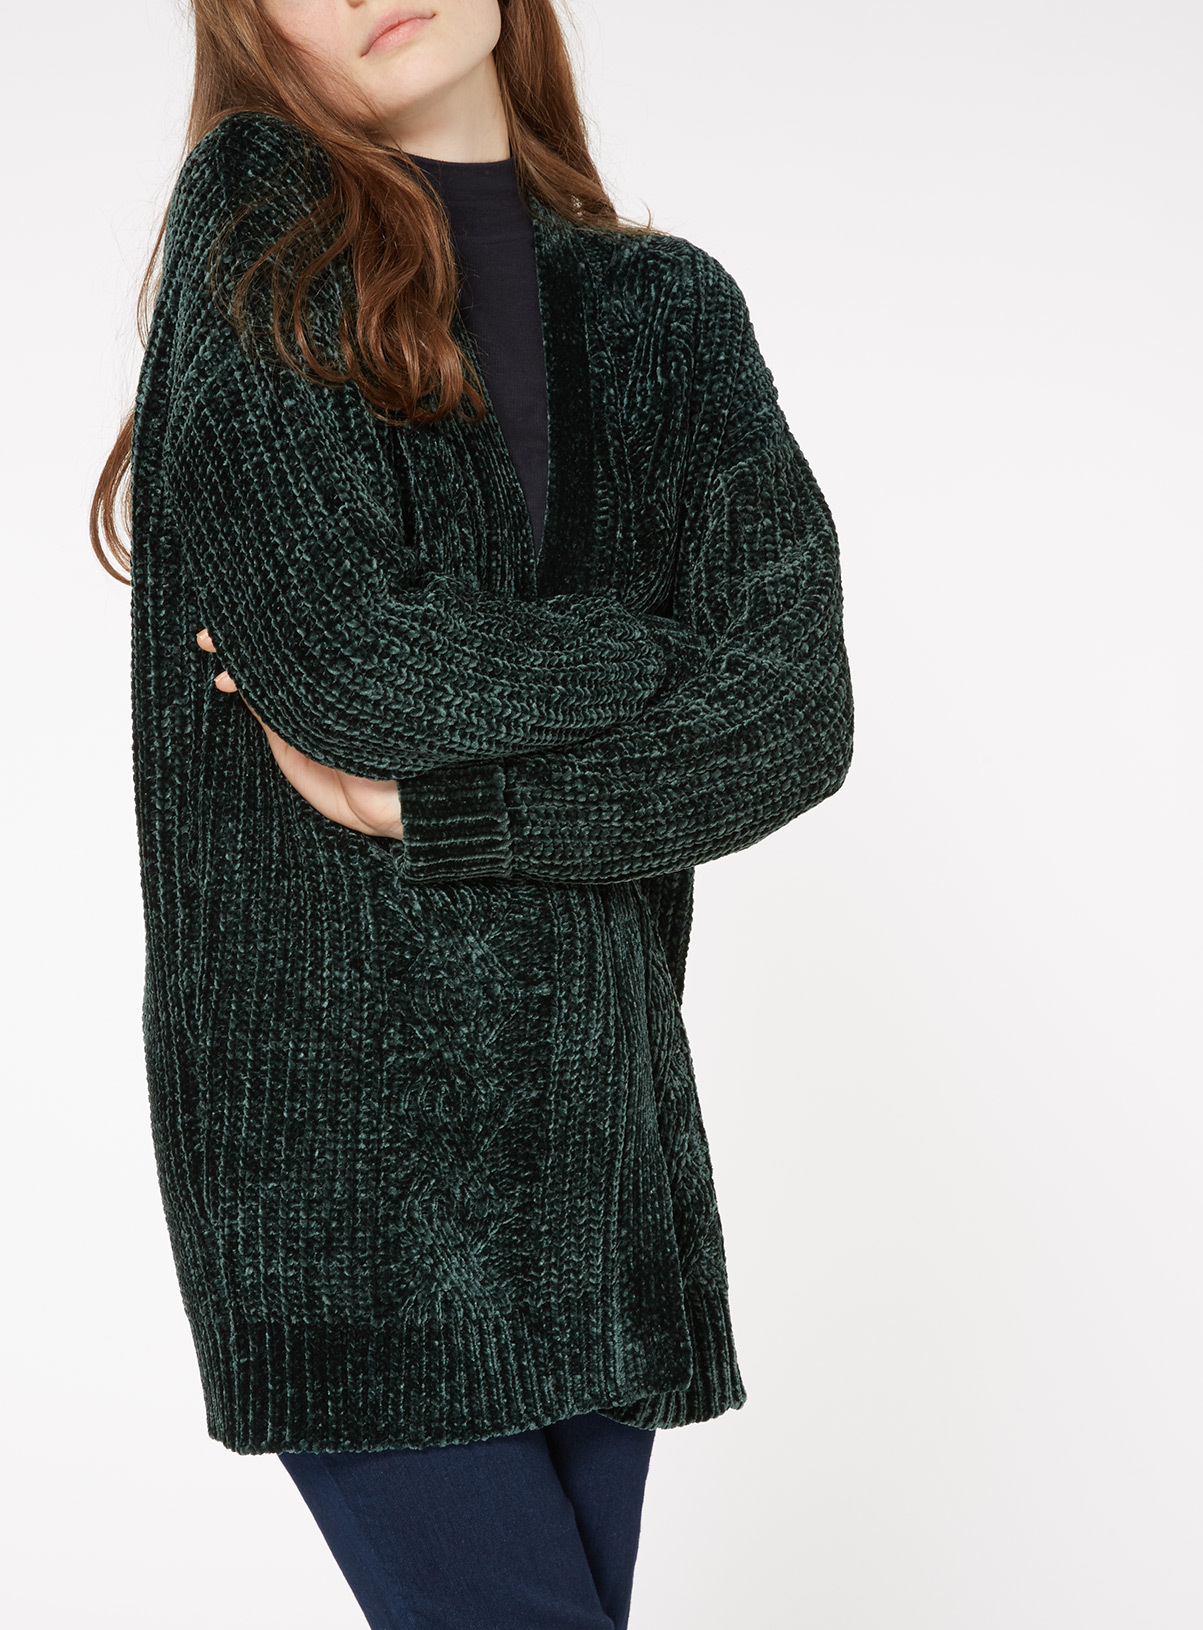 Womens Chenille Cable Knit Cardigan | Tu clothing